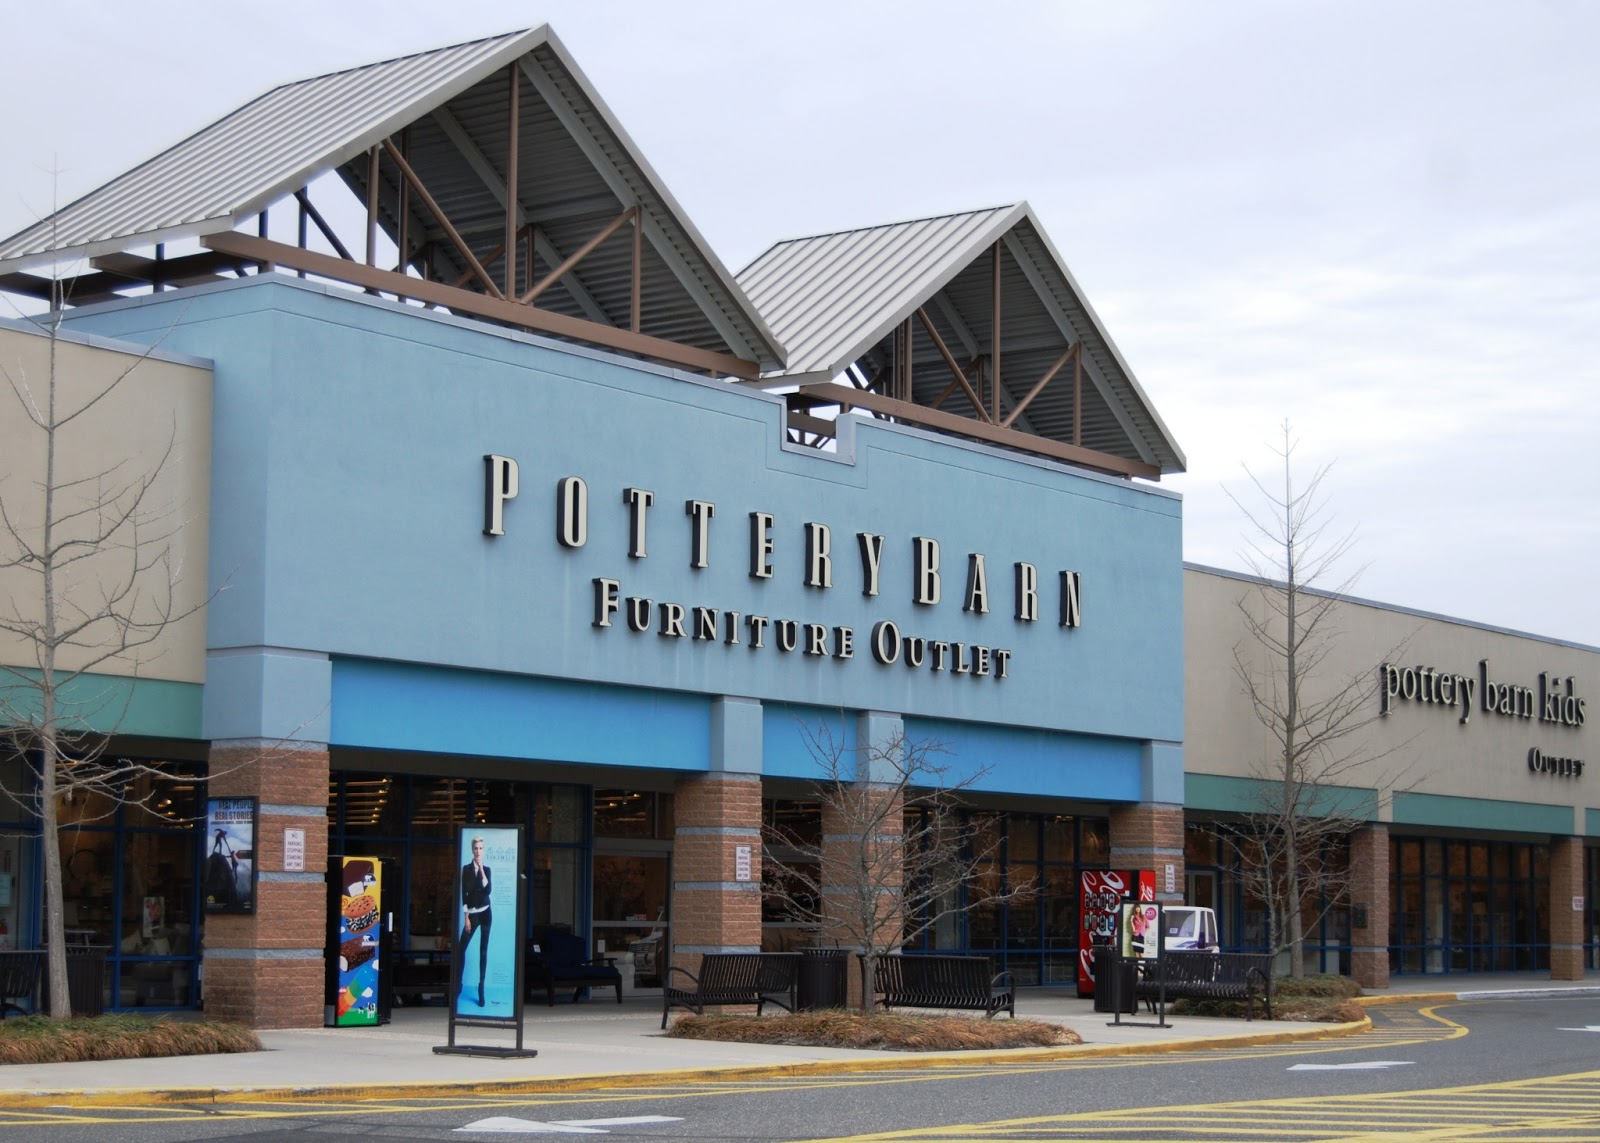 This Town Has An Insane Amount Of Outlets And Pretty Much Every Store You  Could Ever Imagine. We Walked The Whole Outlet Area, Got Lots Of Exercise,  ...